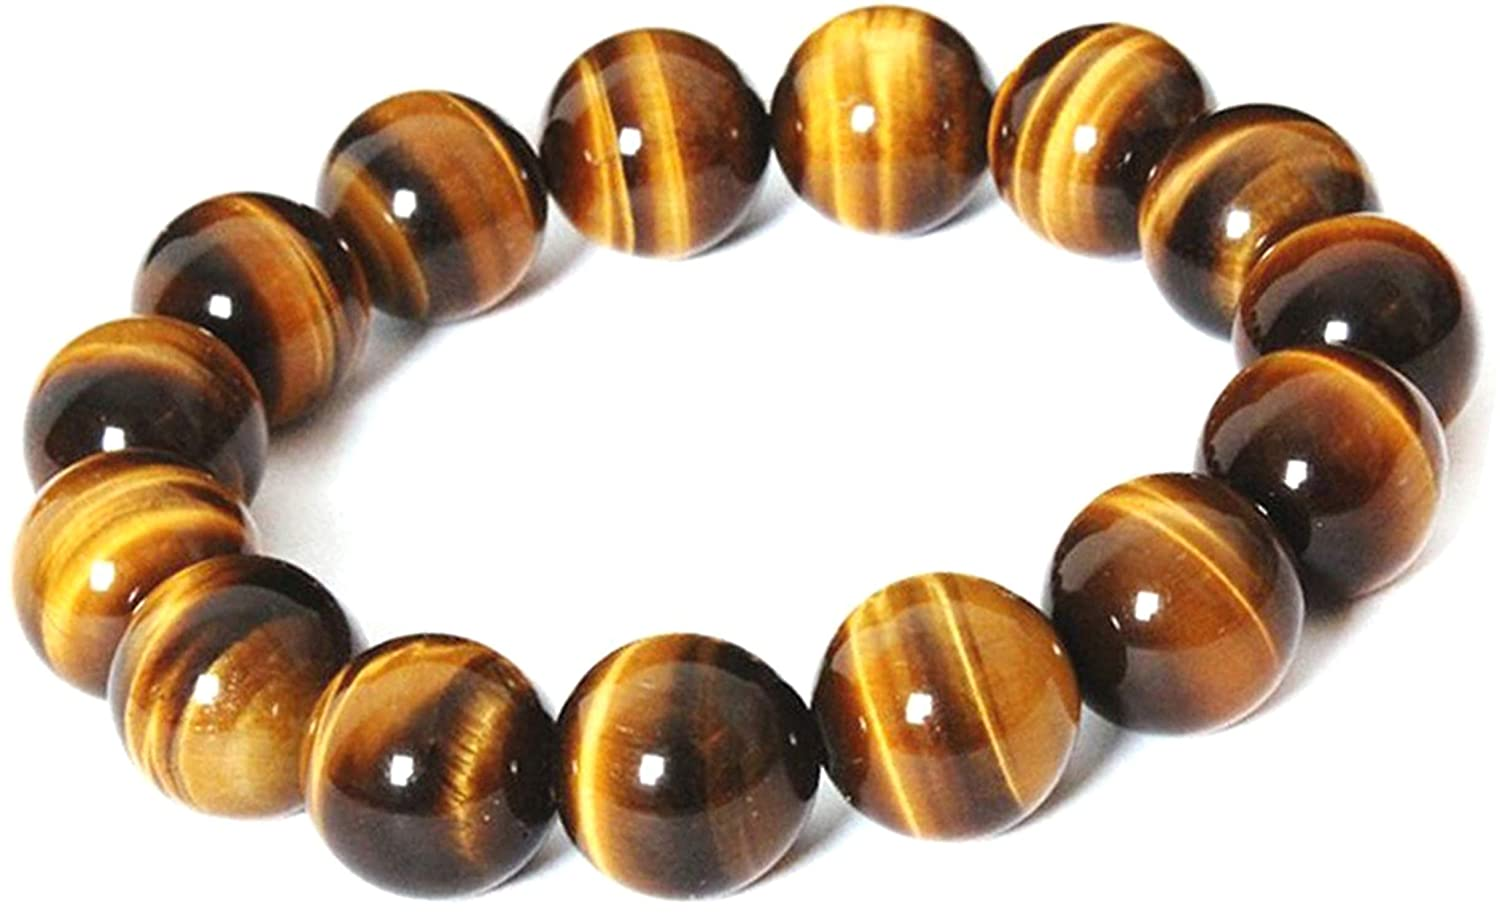 Tiger's Eye Meaning, Properties and Uses